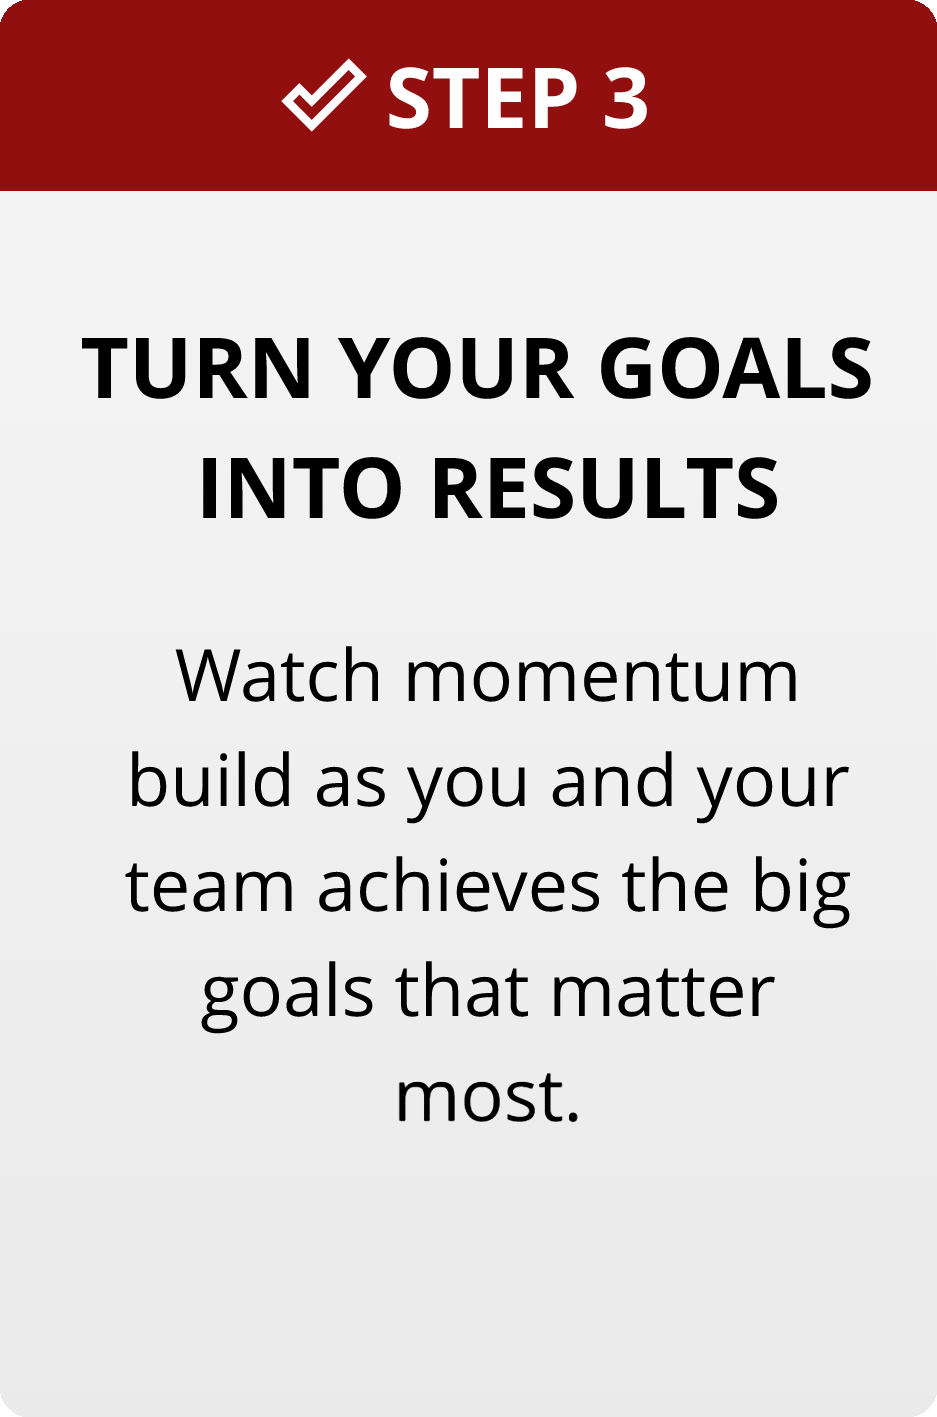 Step 3: Turn your goals into results. Watch momentum build as your team achieves the big goals that matter the most.